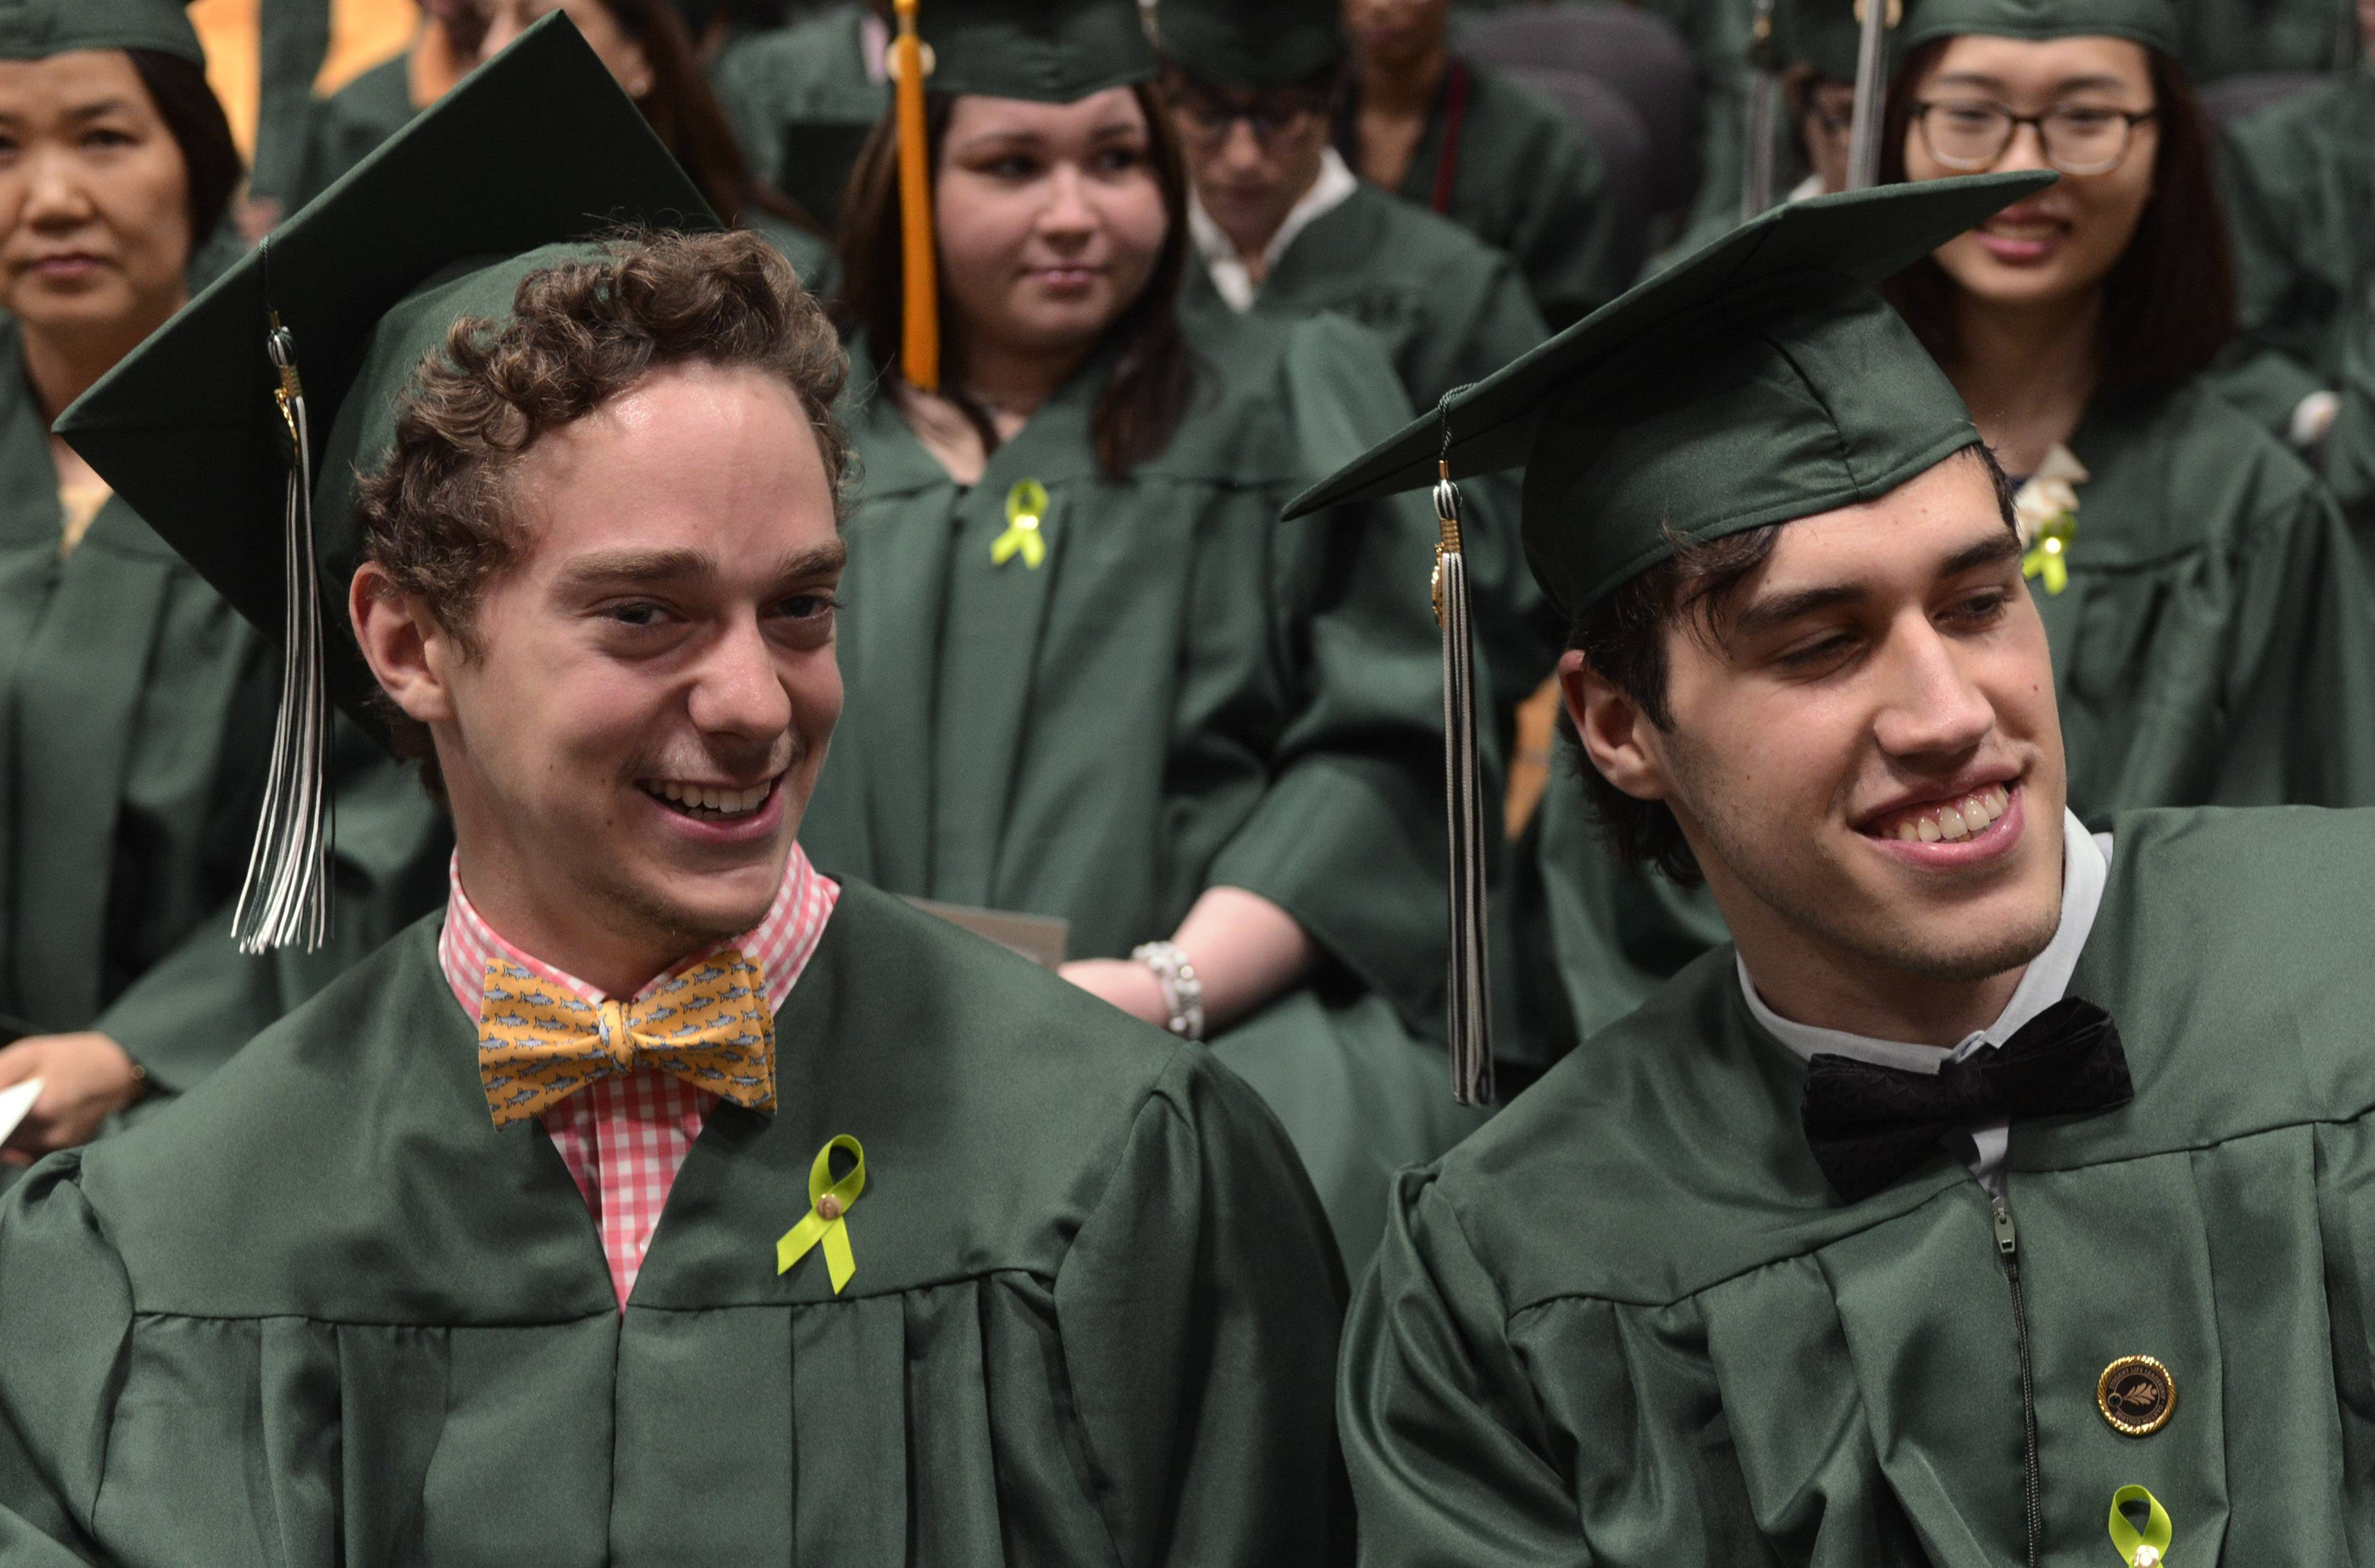 Kevin Beyer of Des Plaines, left, and Emil Vulic of Skokie don bow ties for their graduation ceremony Tuesday at Oakton Community College in Des Plaines.